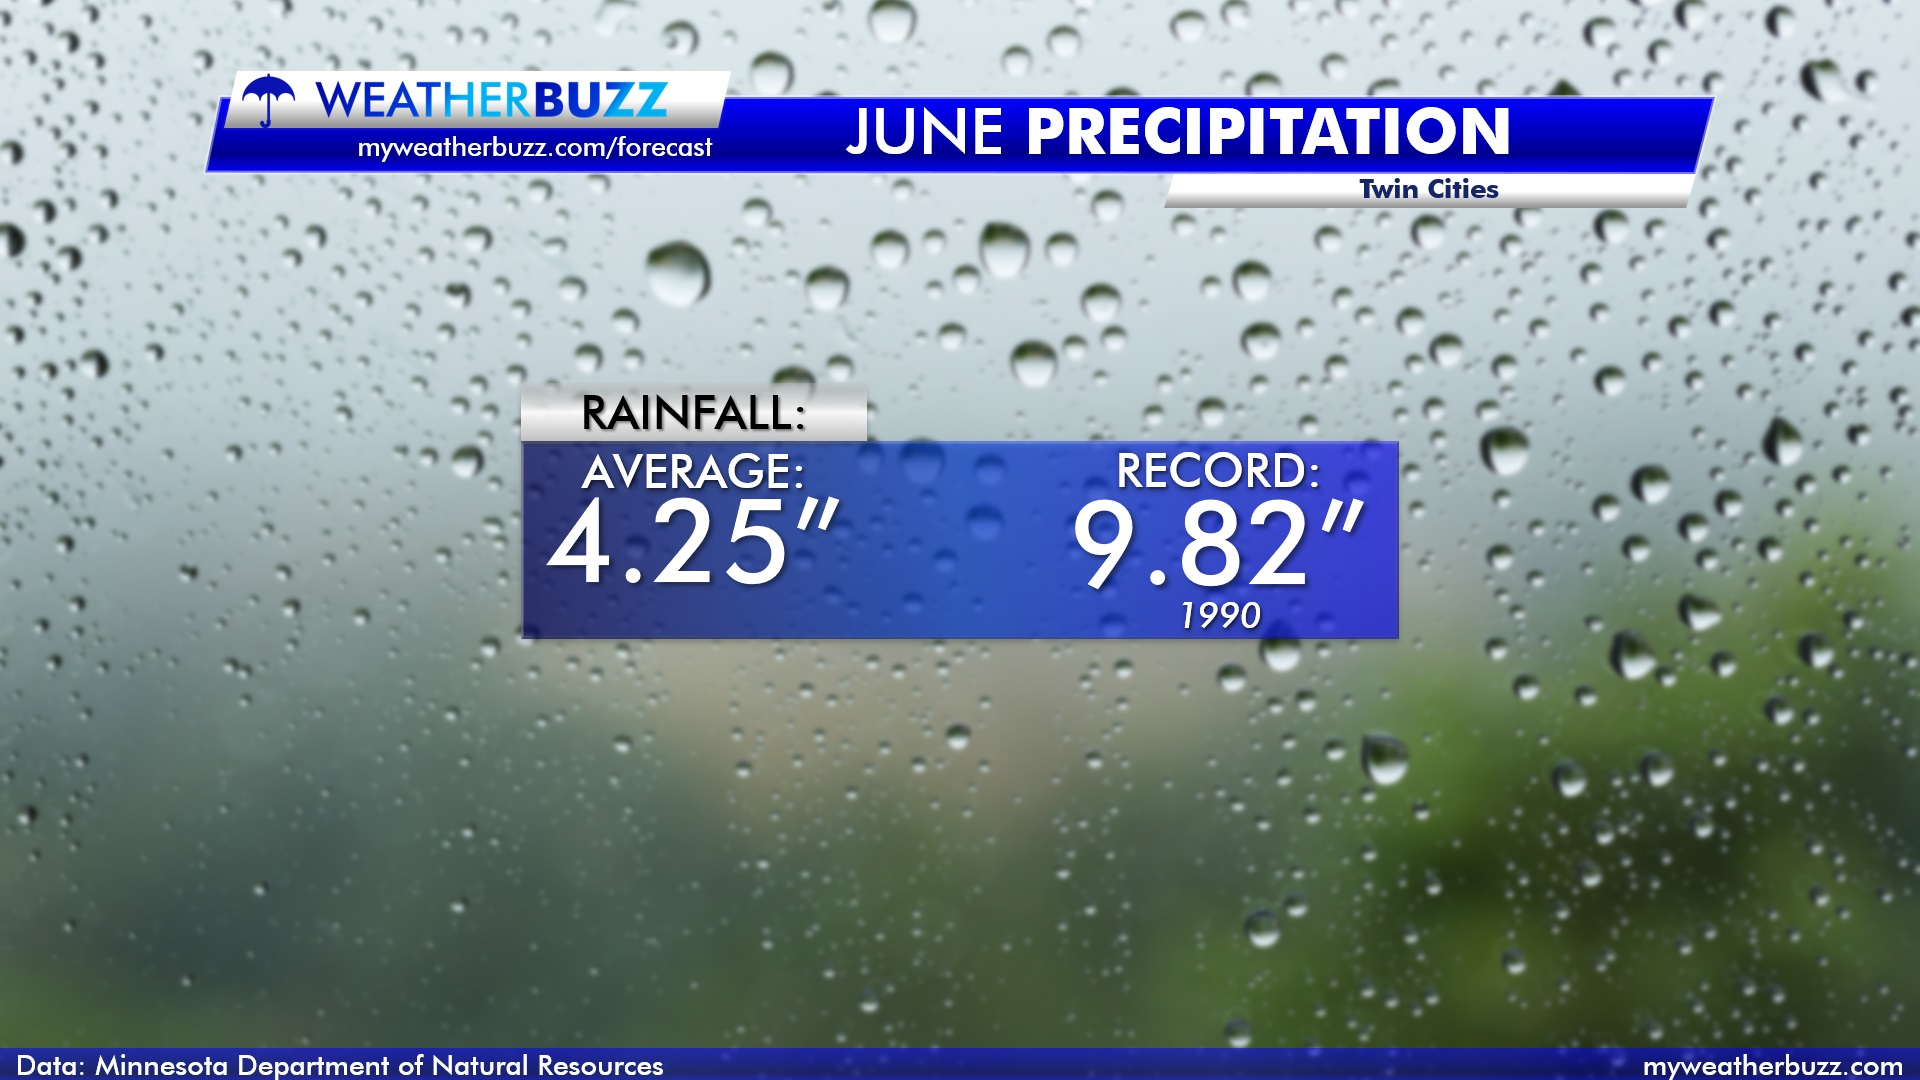 Precipitation in June for the Twin Cities